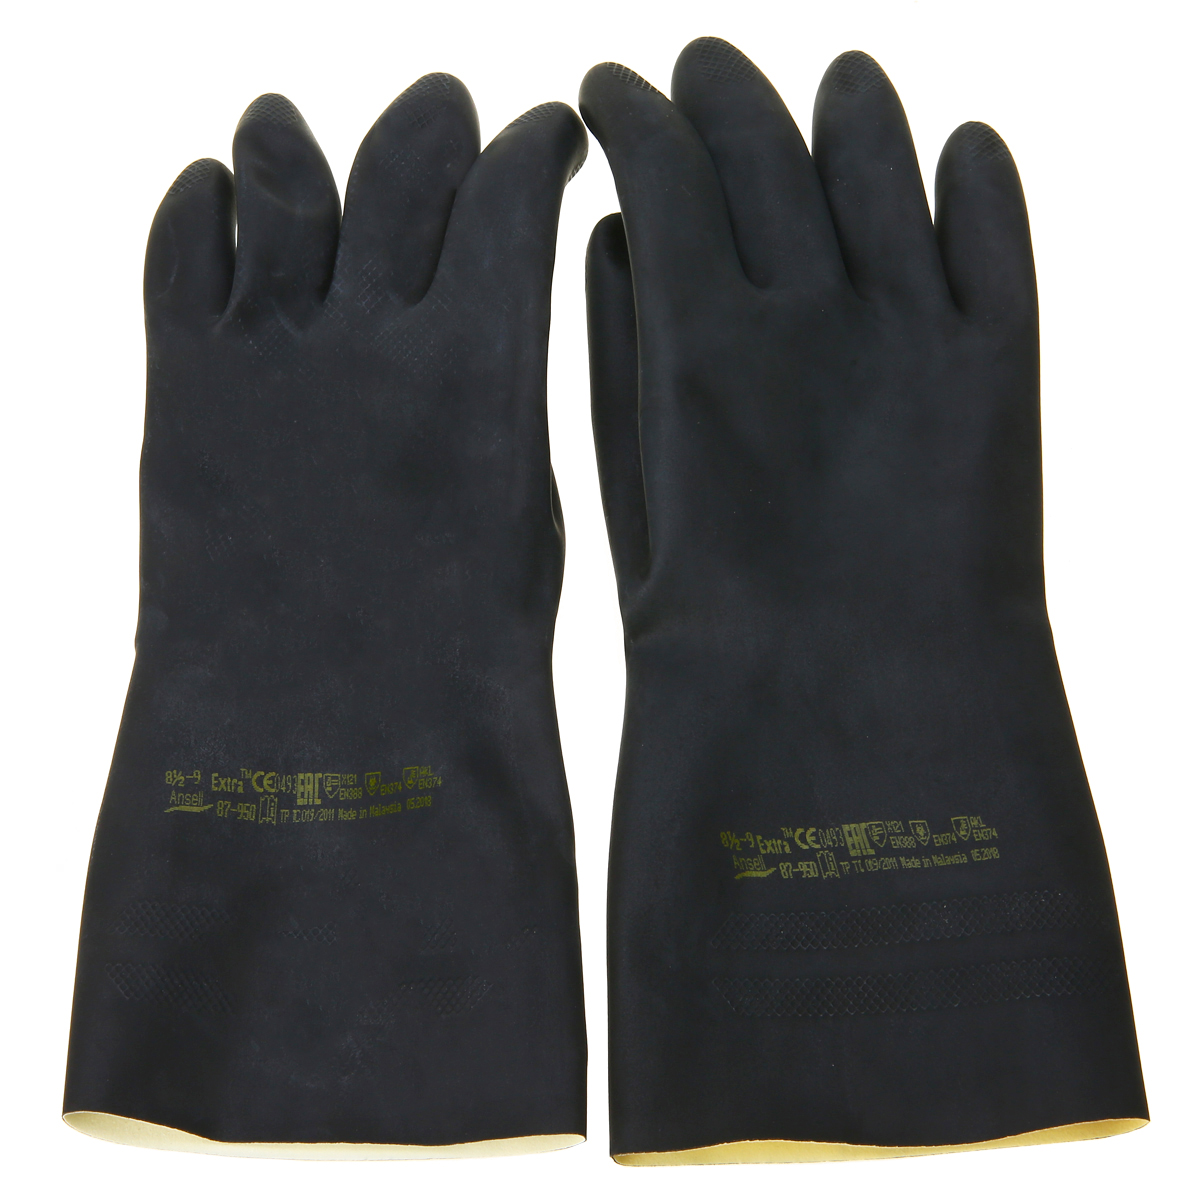 Heavy Duty Natural Rubber Gloves Acid Alkali Resistant Chemical Gauntlet Glove Black For Lab Work Home Supplies